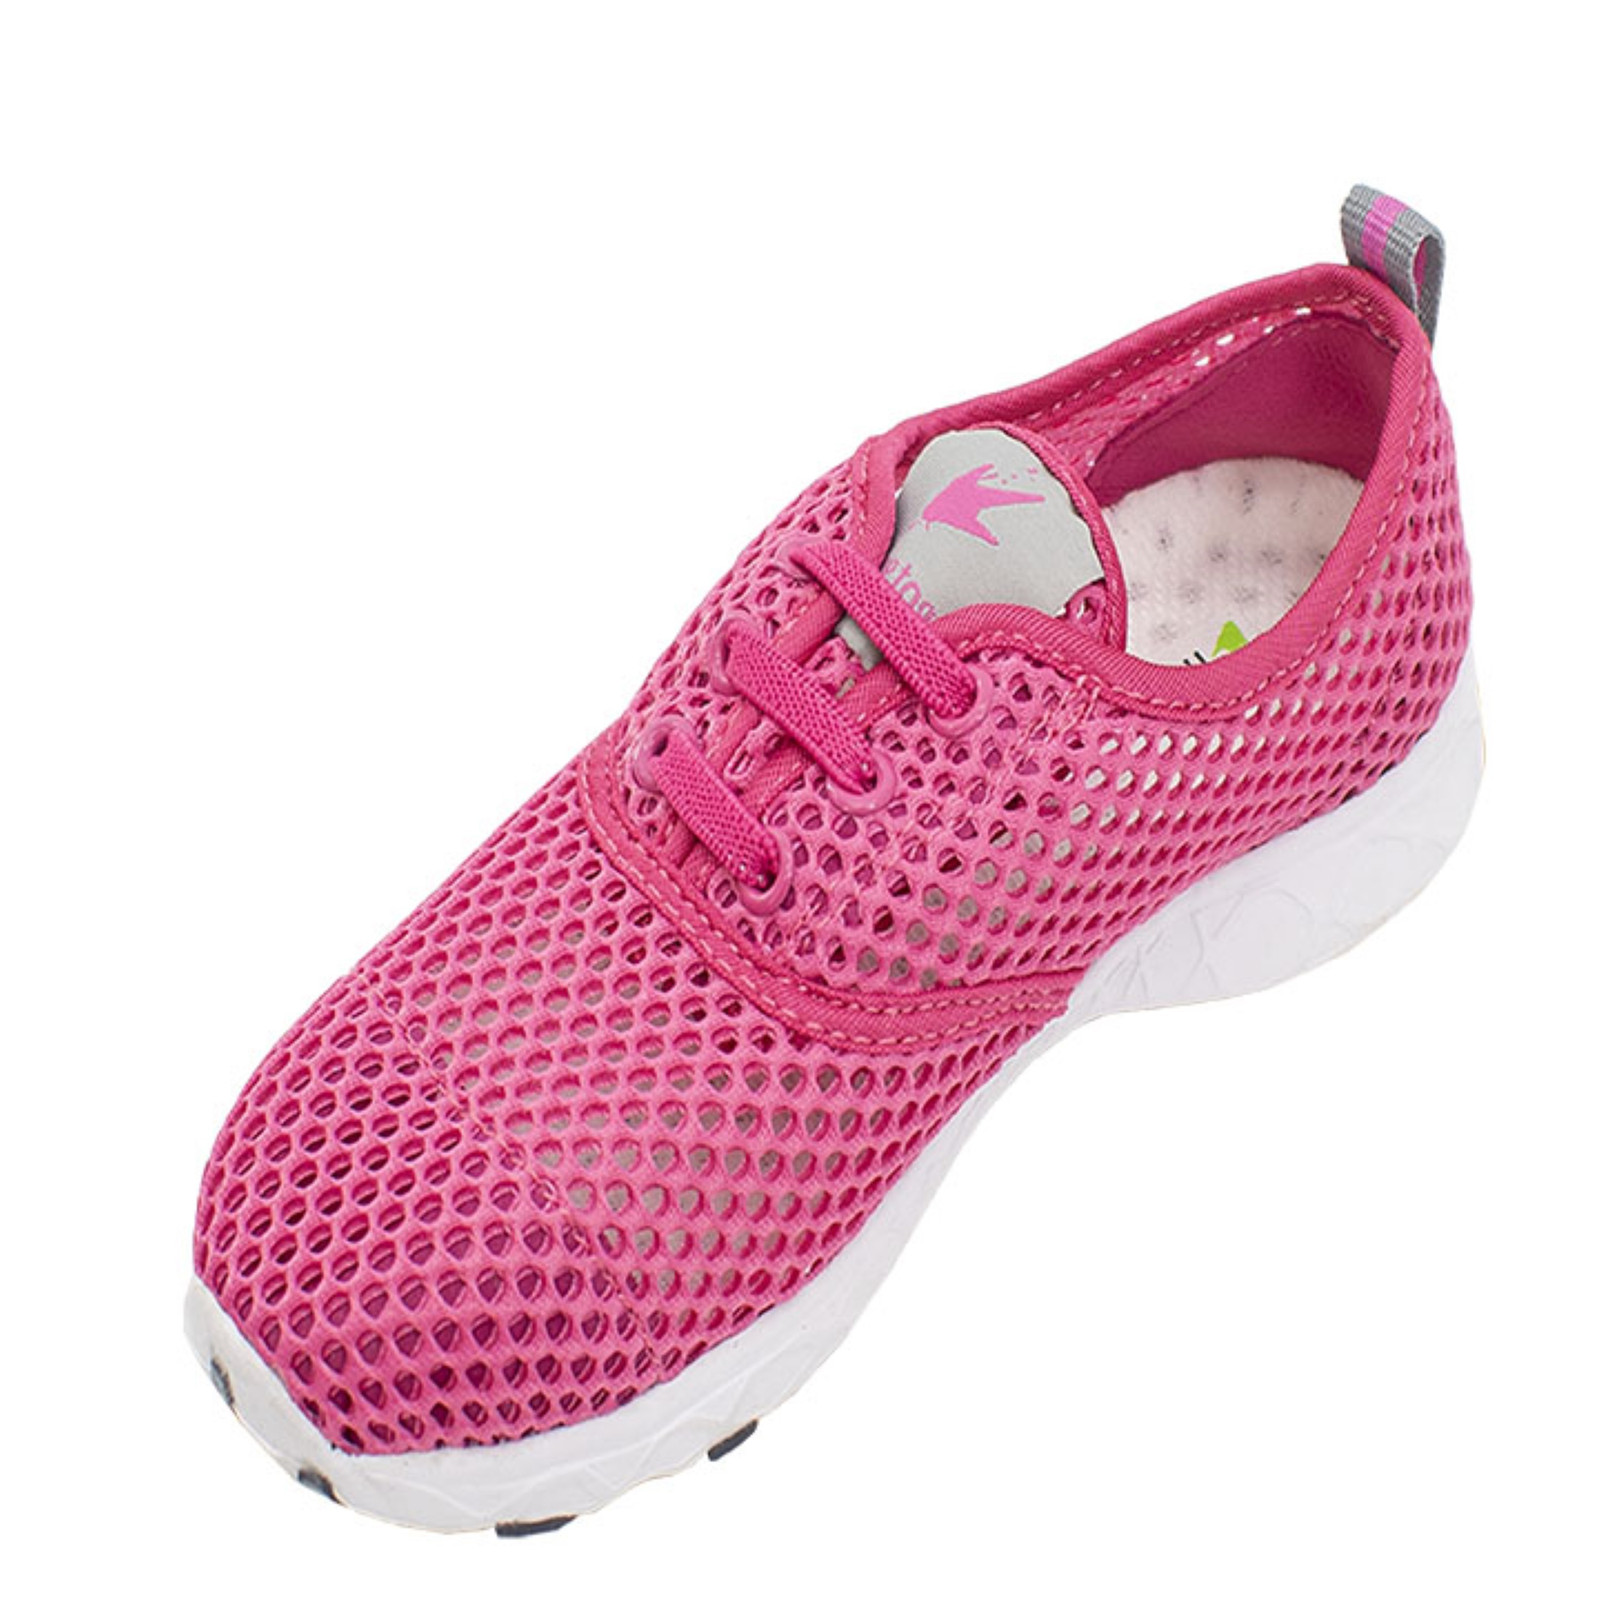 Skipper Youth Pink Shoe-large